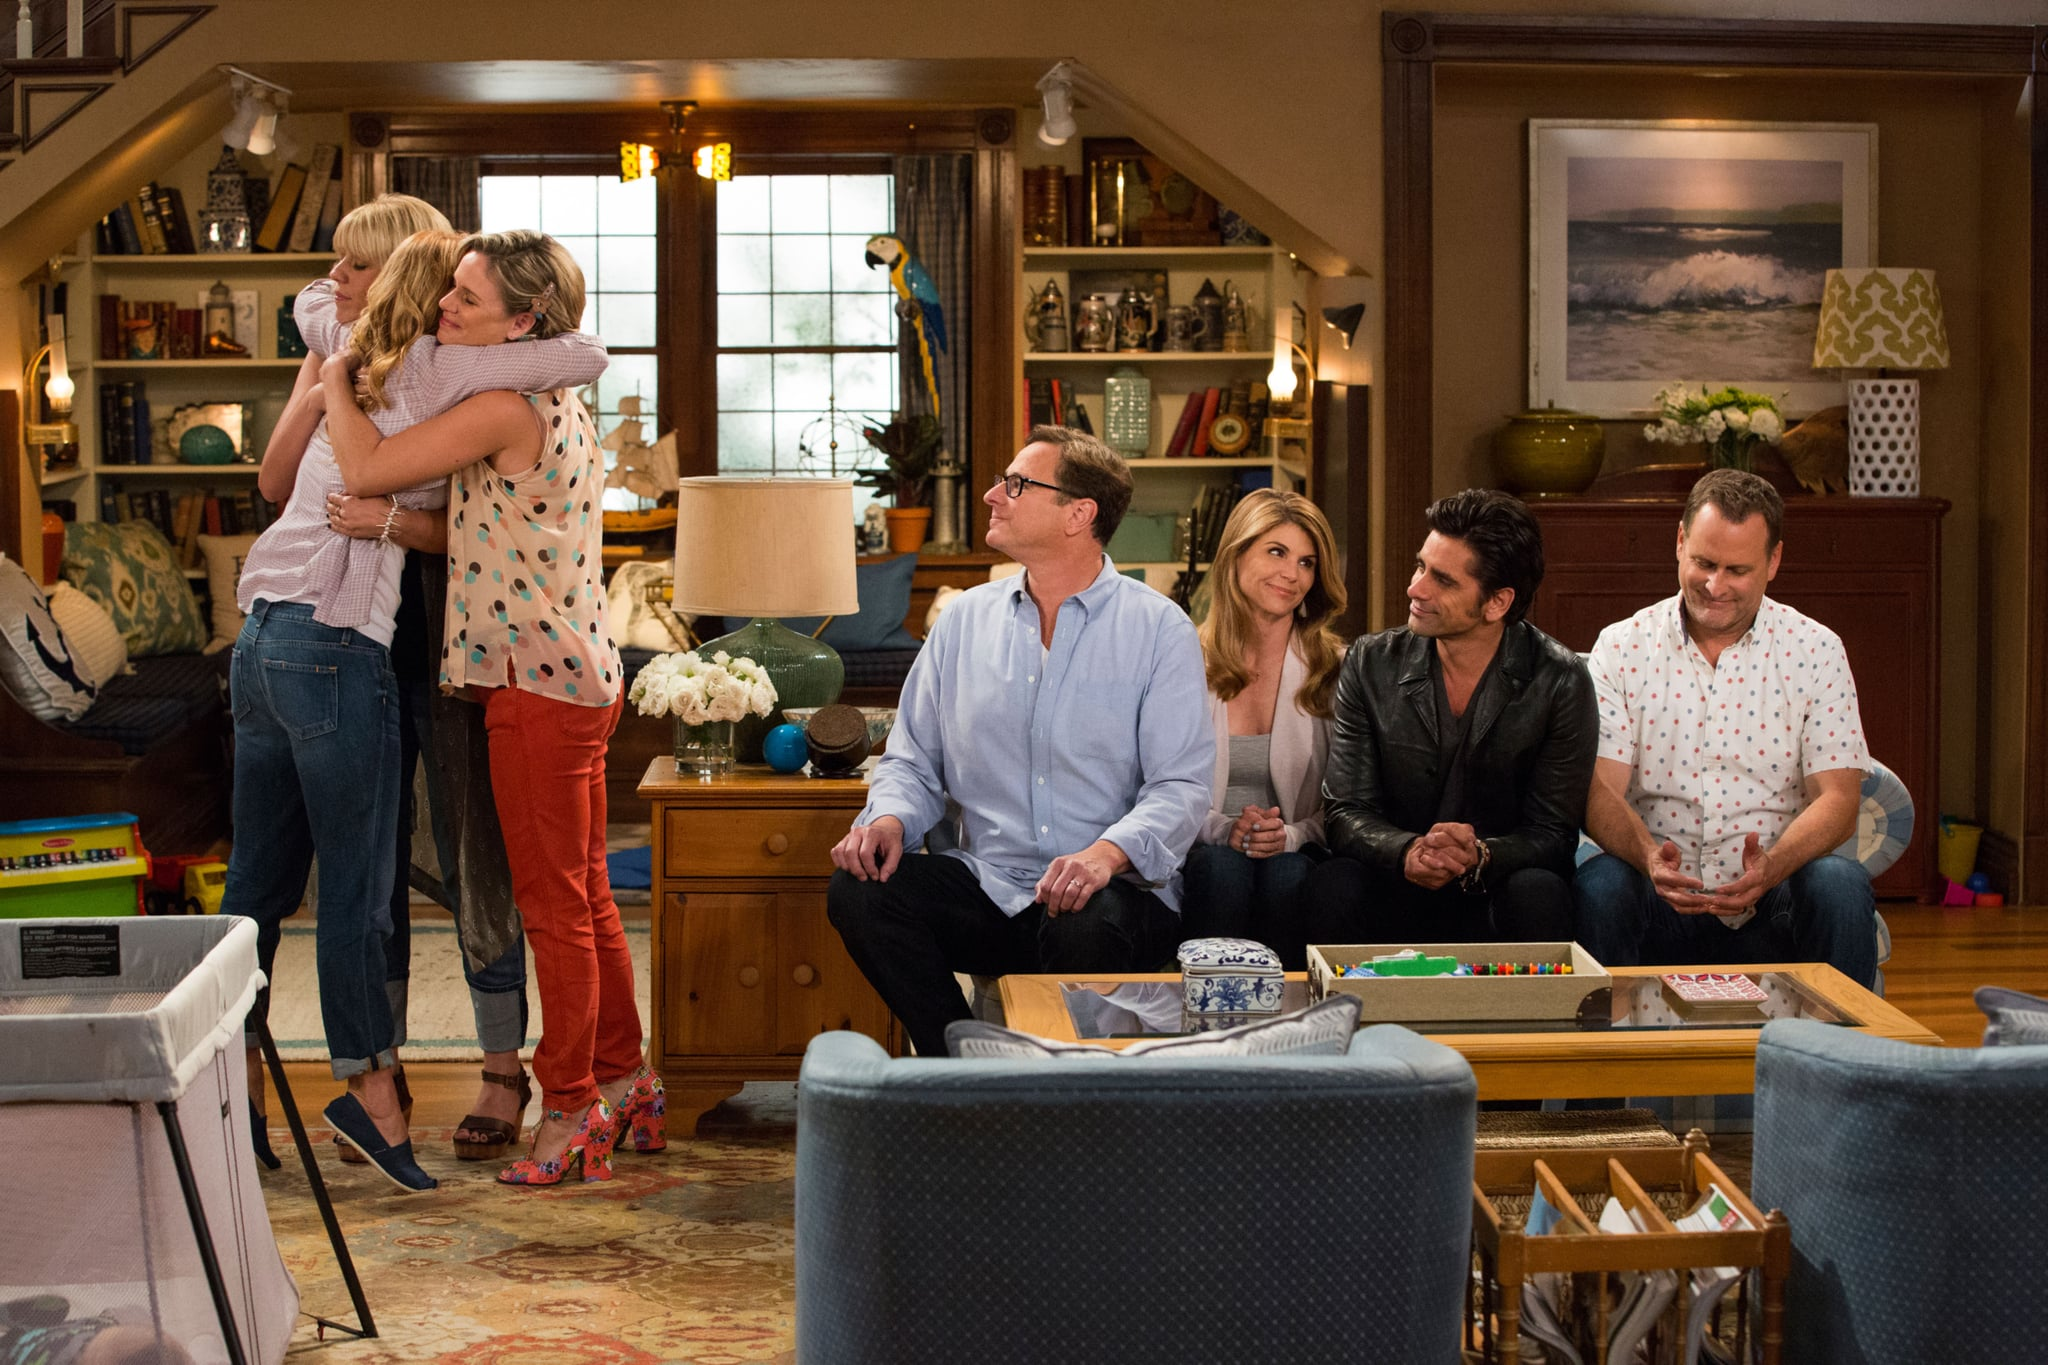 FULLER HOUSE, l-r: Jodie Sweetin, Candace Cameron Bure (back to camera), Andrea Barber, Bob Saget, Lori Loughlin, John Stamos, Dave Coulier in 'Our Very First Show, Again' (Season 1, Episode 1, aired February 26, 2016). ph: Michael Yarish/Netflix/courtesy Everett Collection